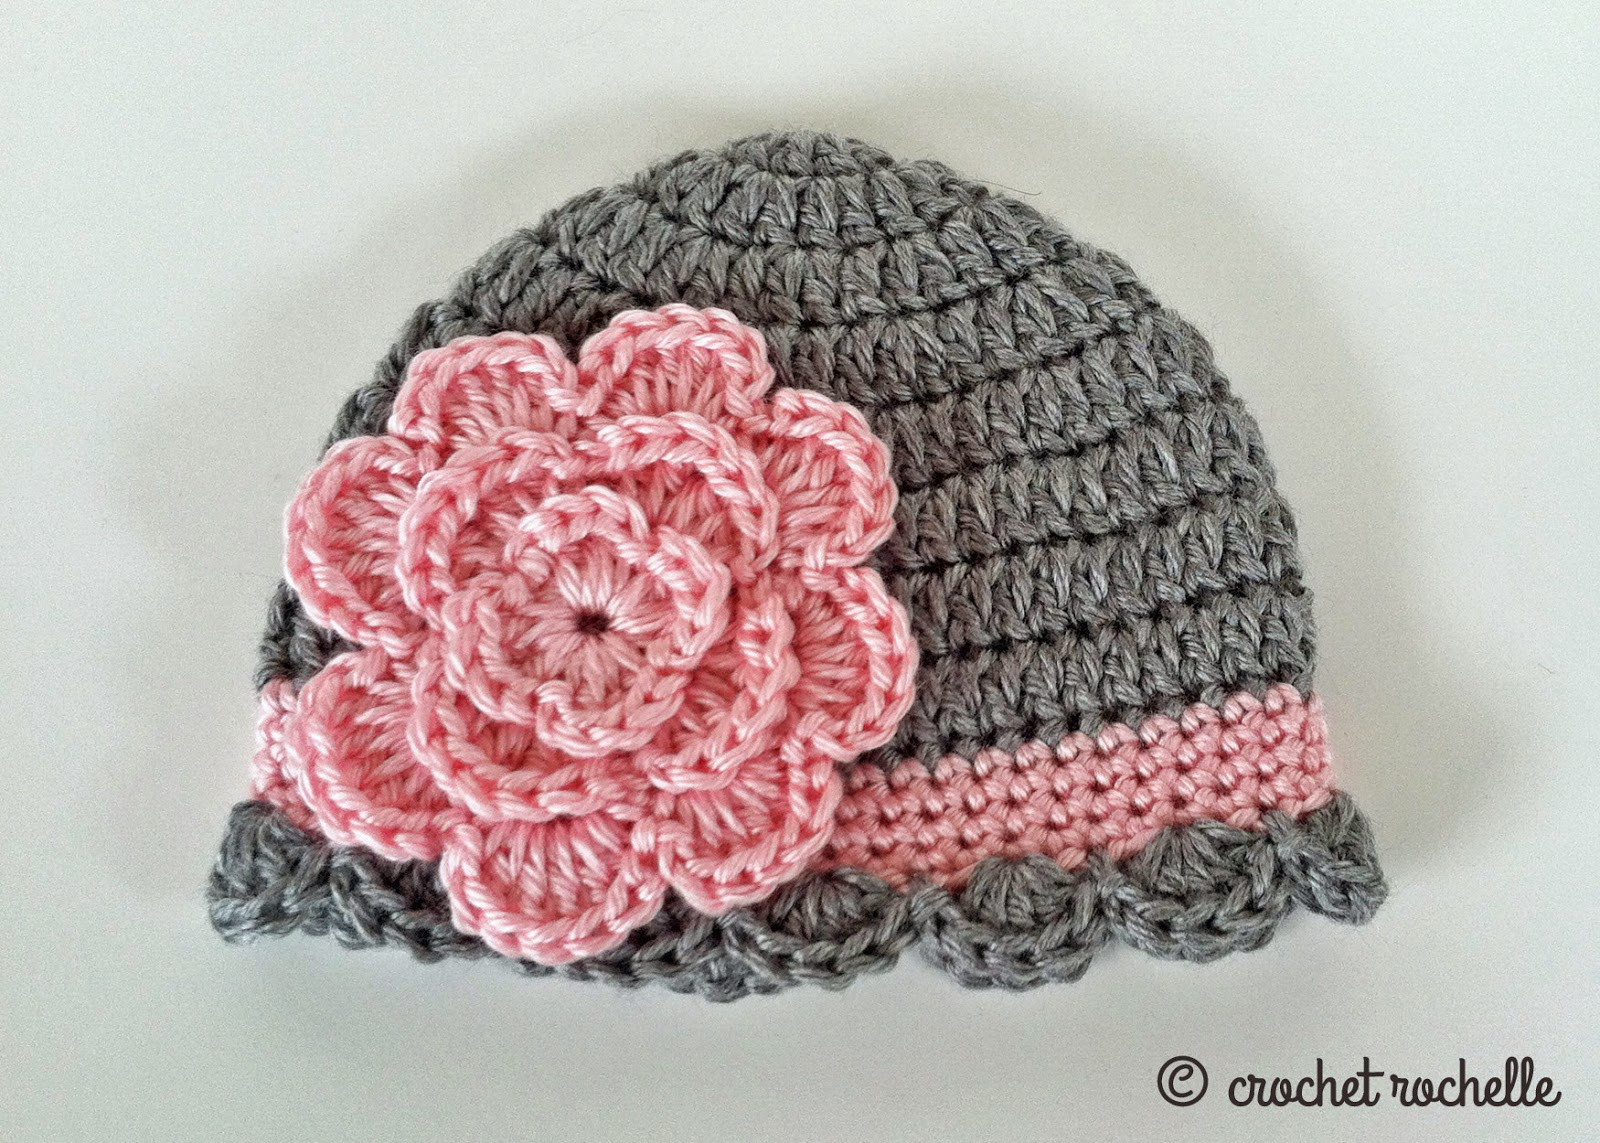 Crochet Beanie Pattern Fresh Crochet Rochelle Pretty Baby Beanie Of Luxury 43 Pics Crochet Beanie Pattern